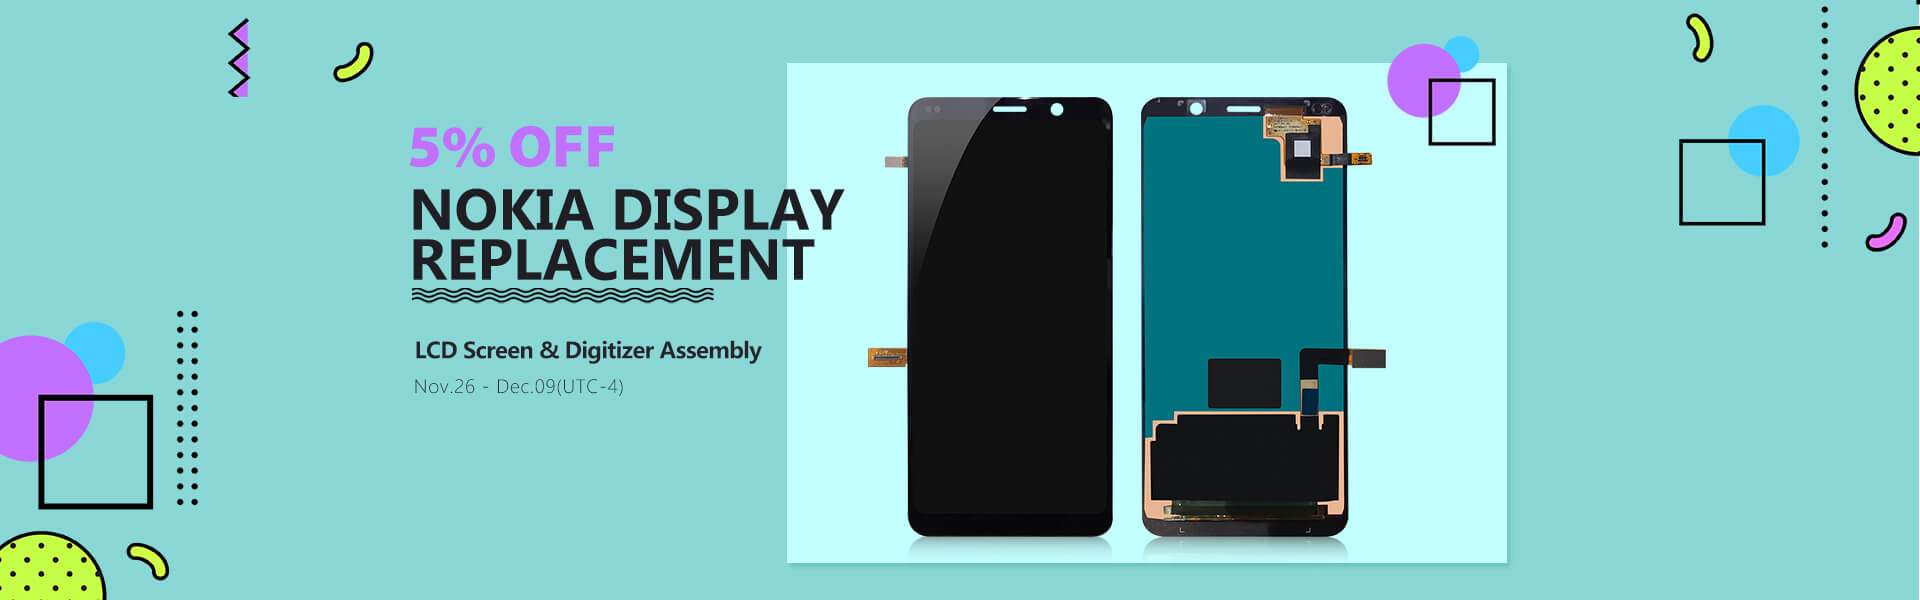 Ipartsexpert Unveils Quality & Fashion Phone Accessories To Accessorize, Personalize, And Protect Mobile Phones For People